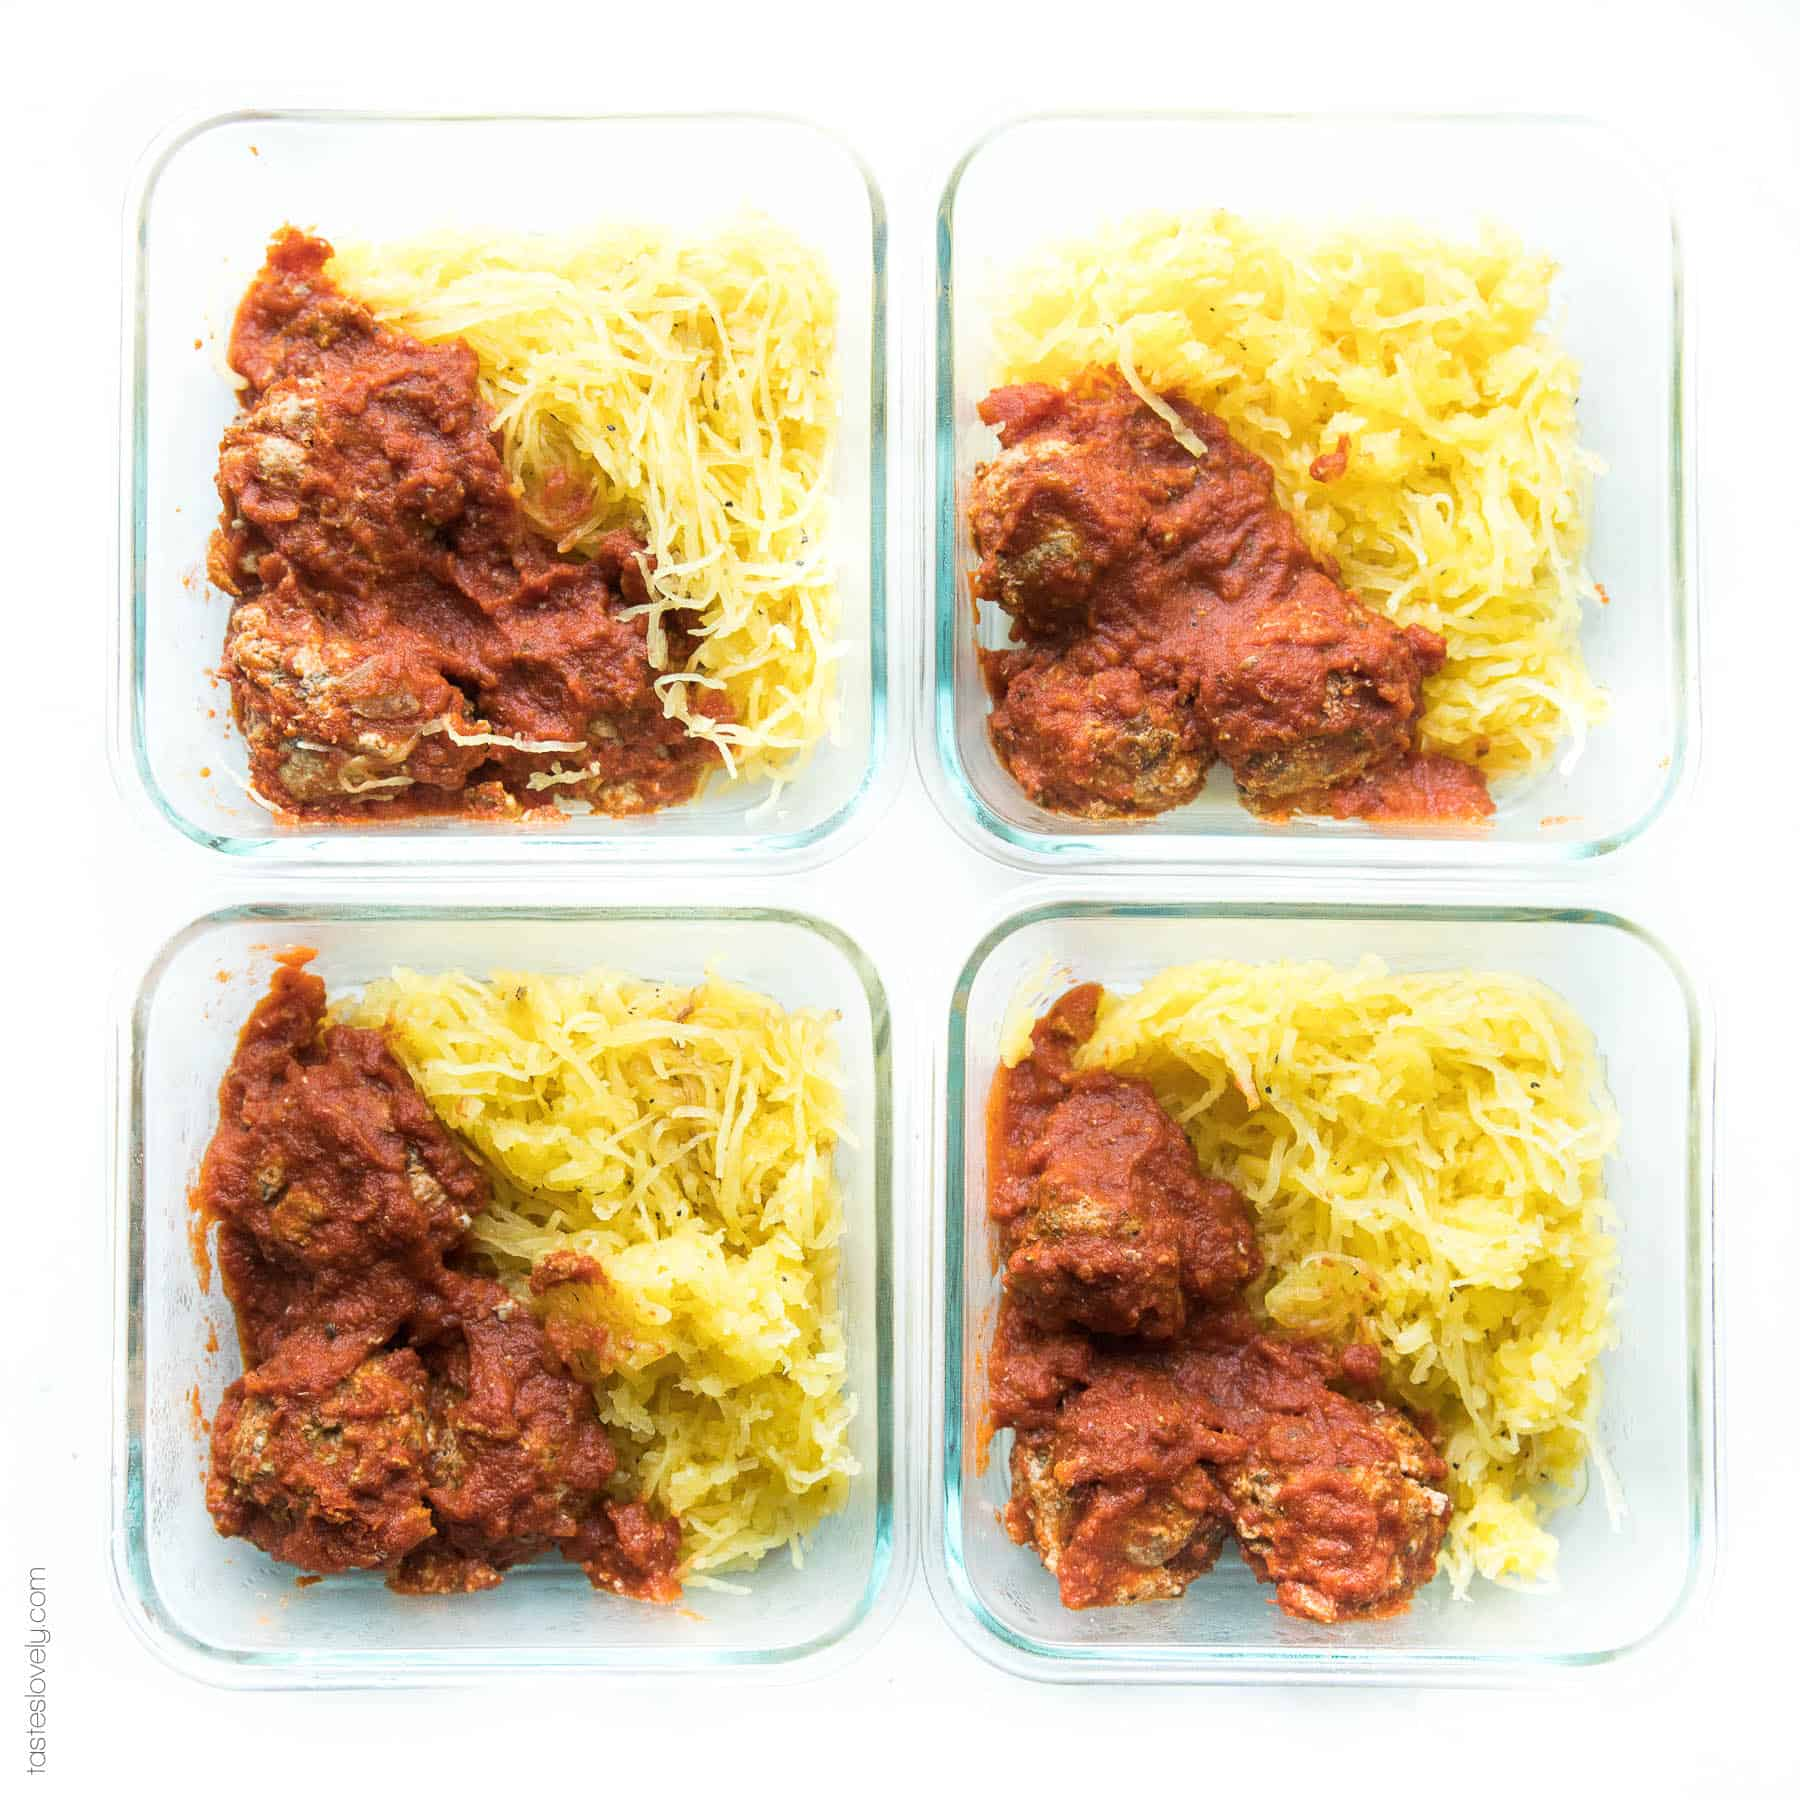 meatballs and spaghetti squash noodles in a meal prep container